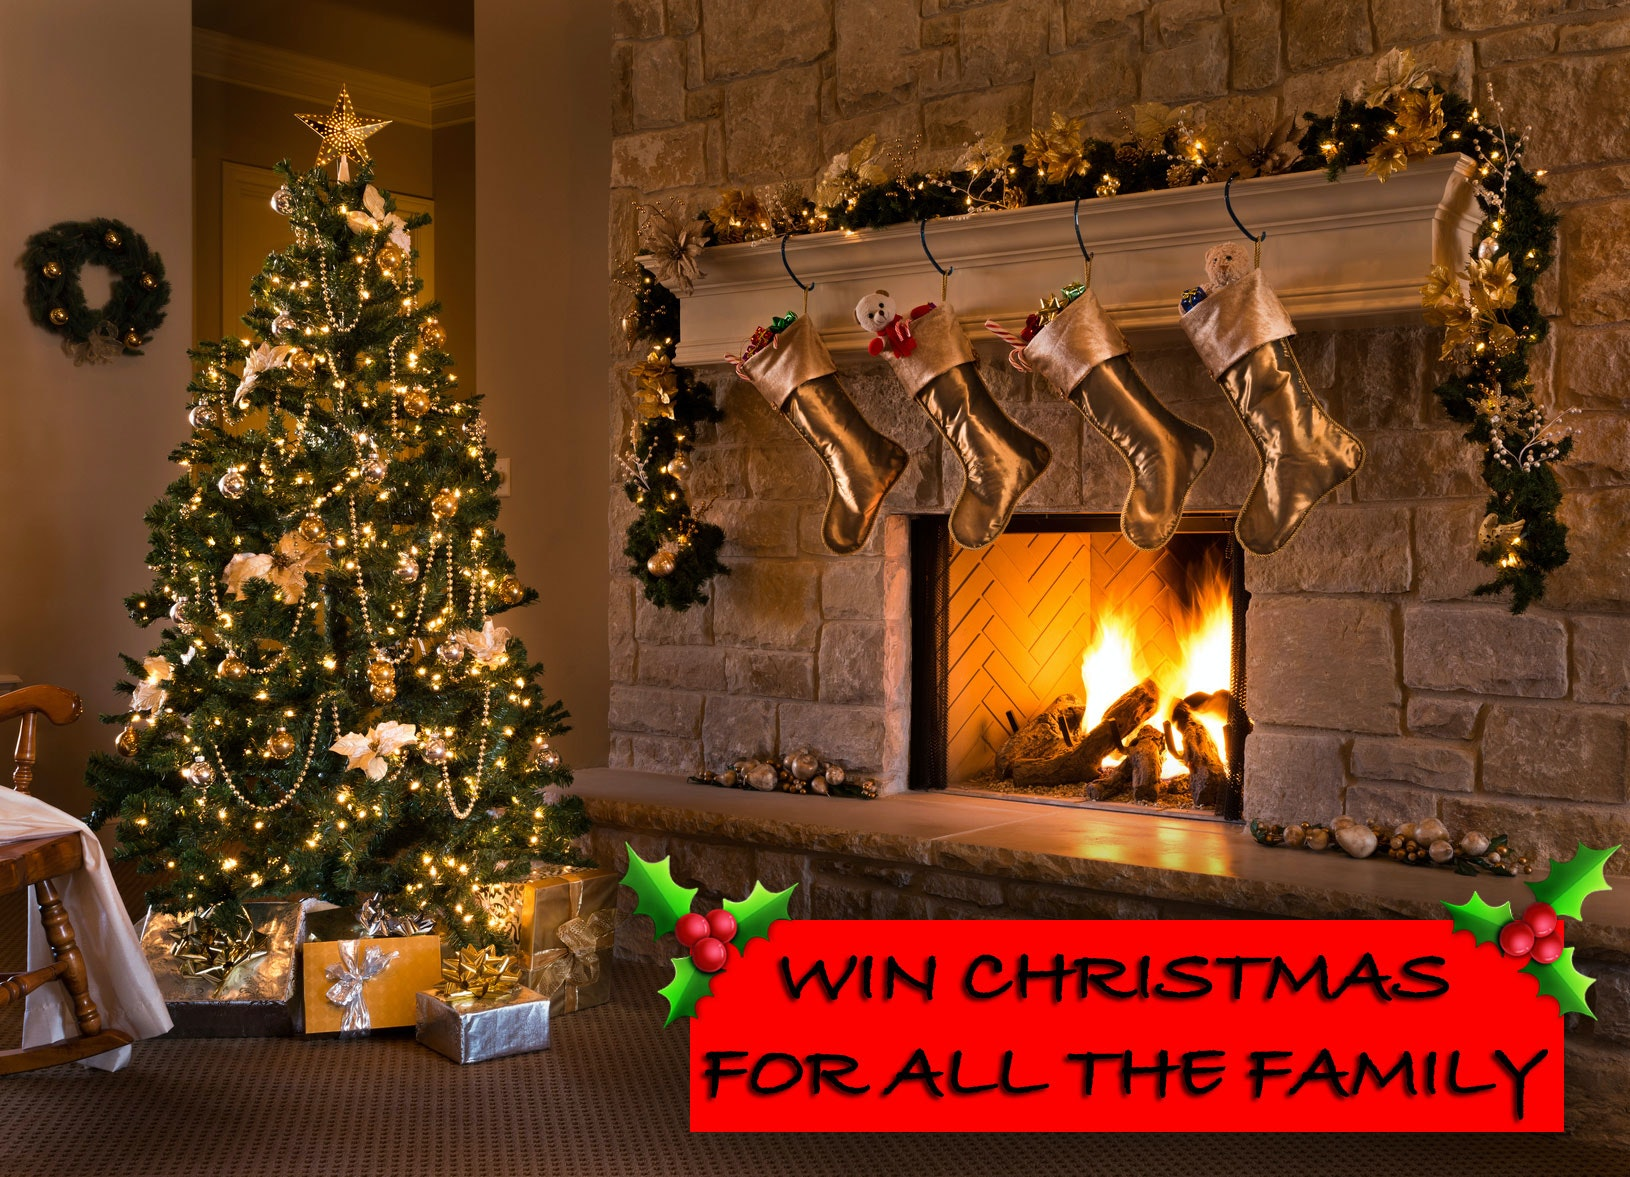 Christmas for the family!  sweepstakes